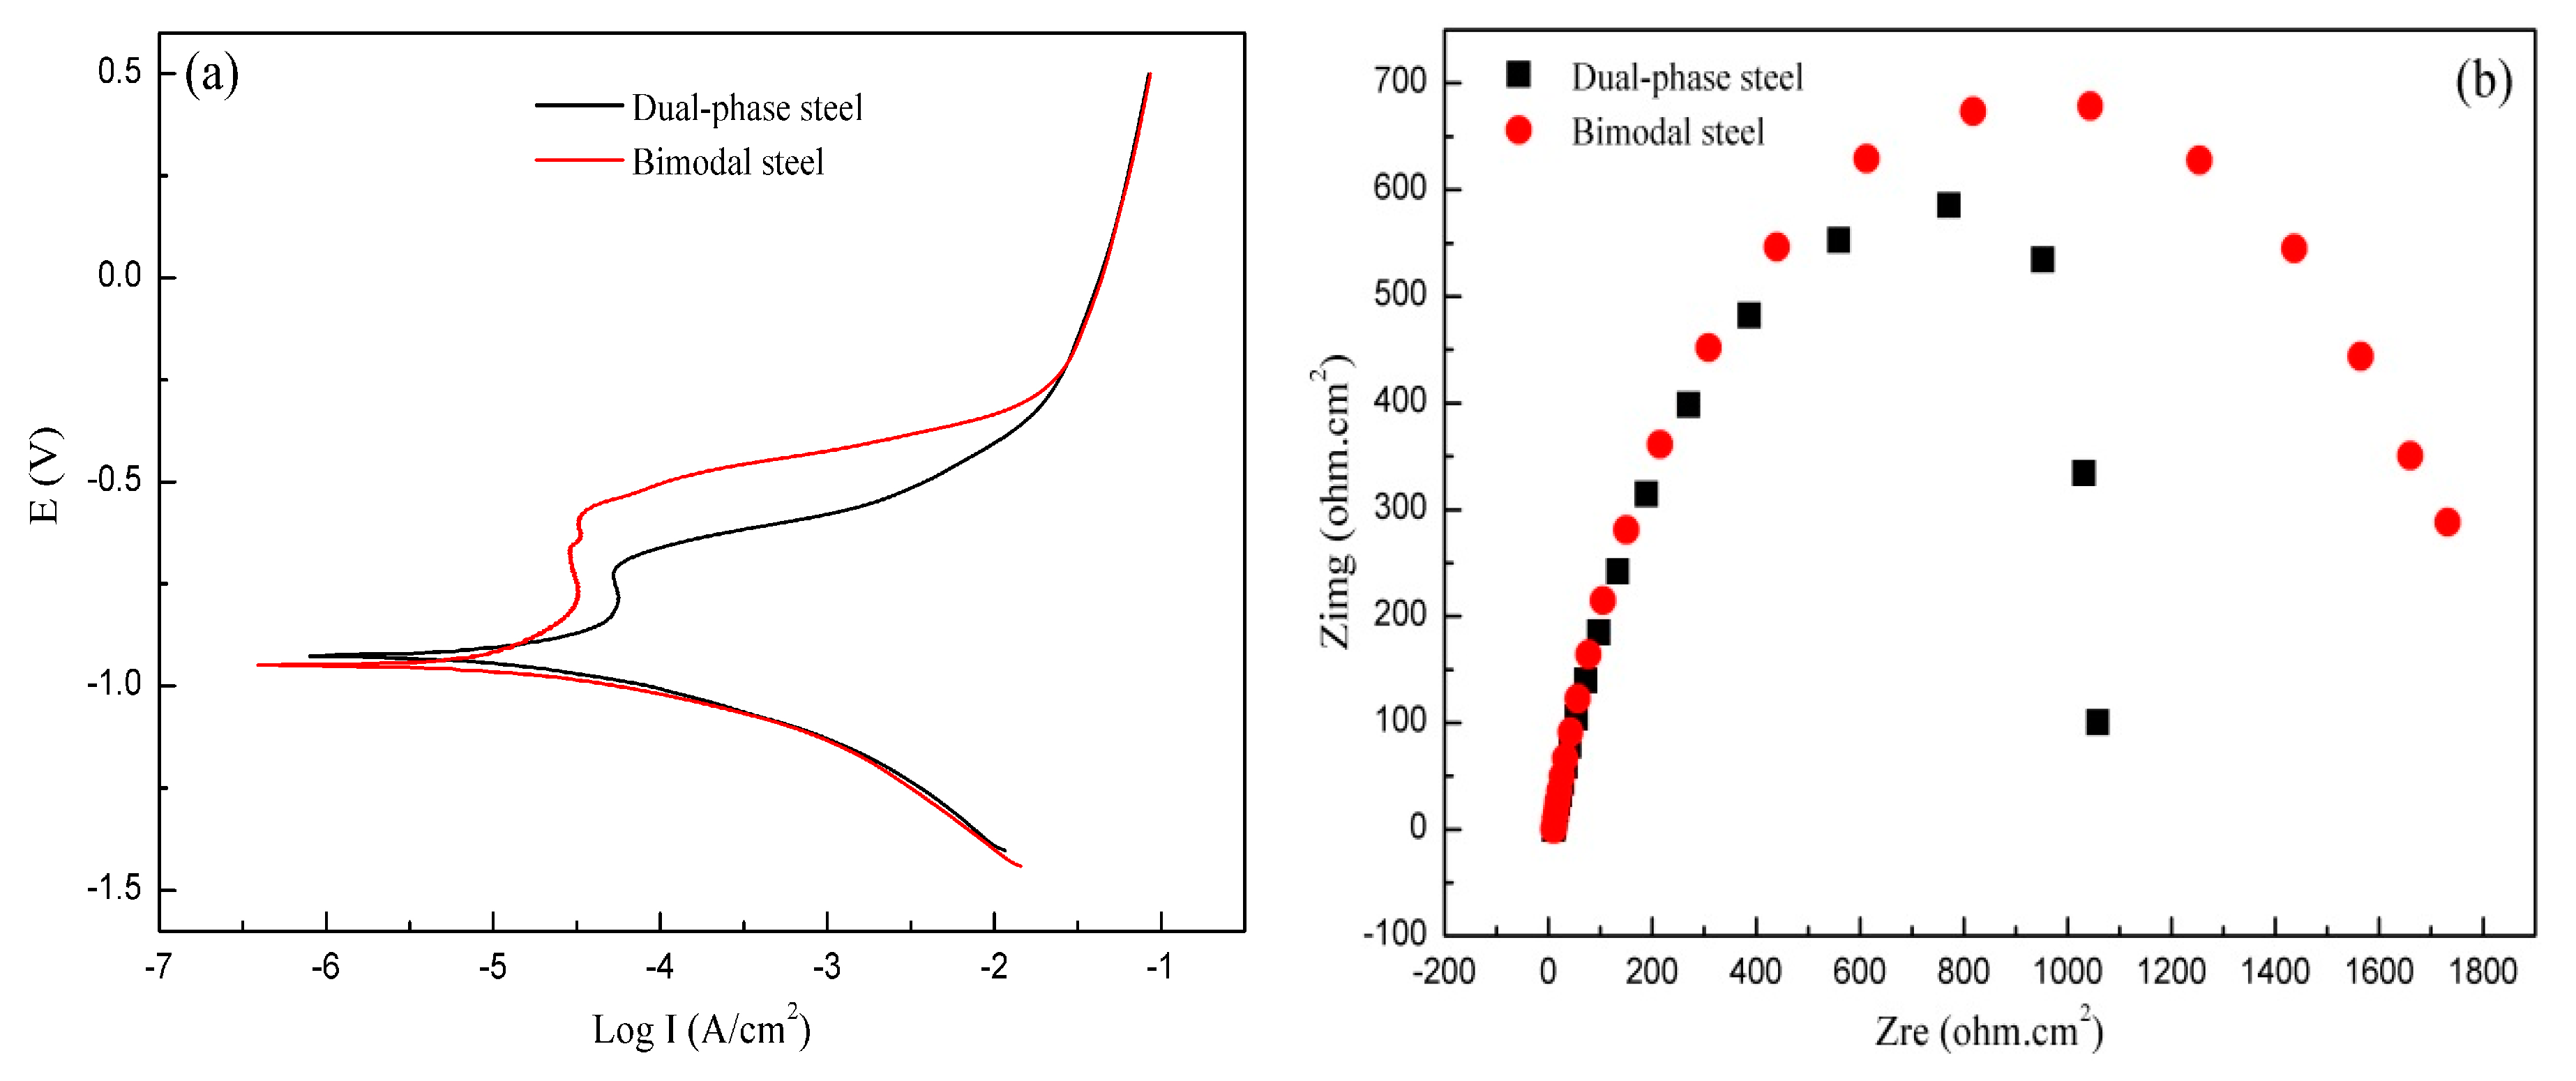 mechanical properties of laser welded dualphase Evaluation of residual stresses and mechanical properties of if steel laser beam welding has been of laser welded dissimilar dp600/dp980 dual-phase.